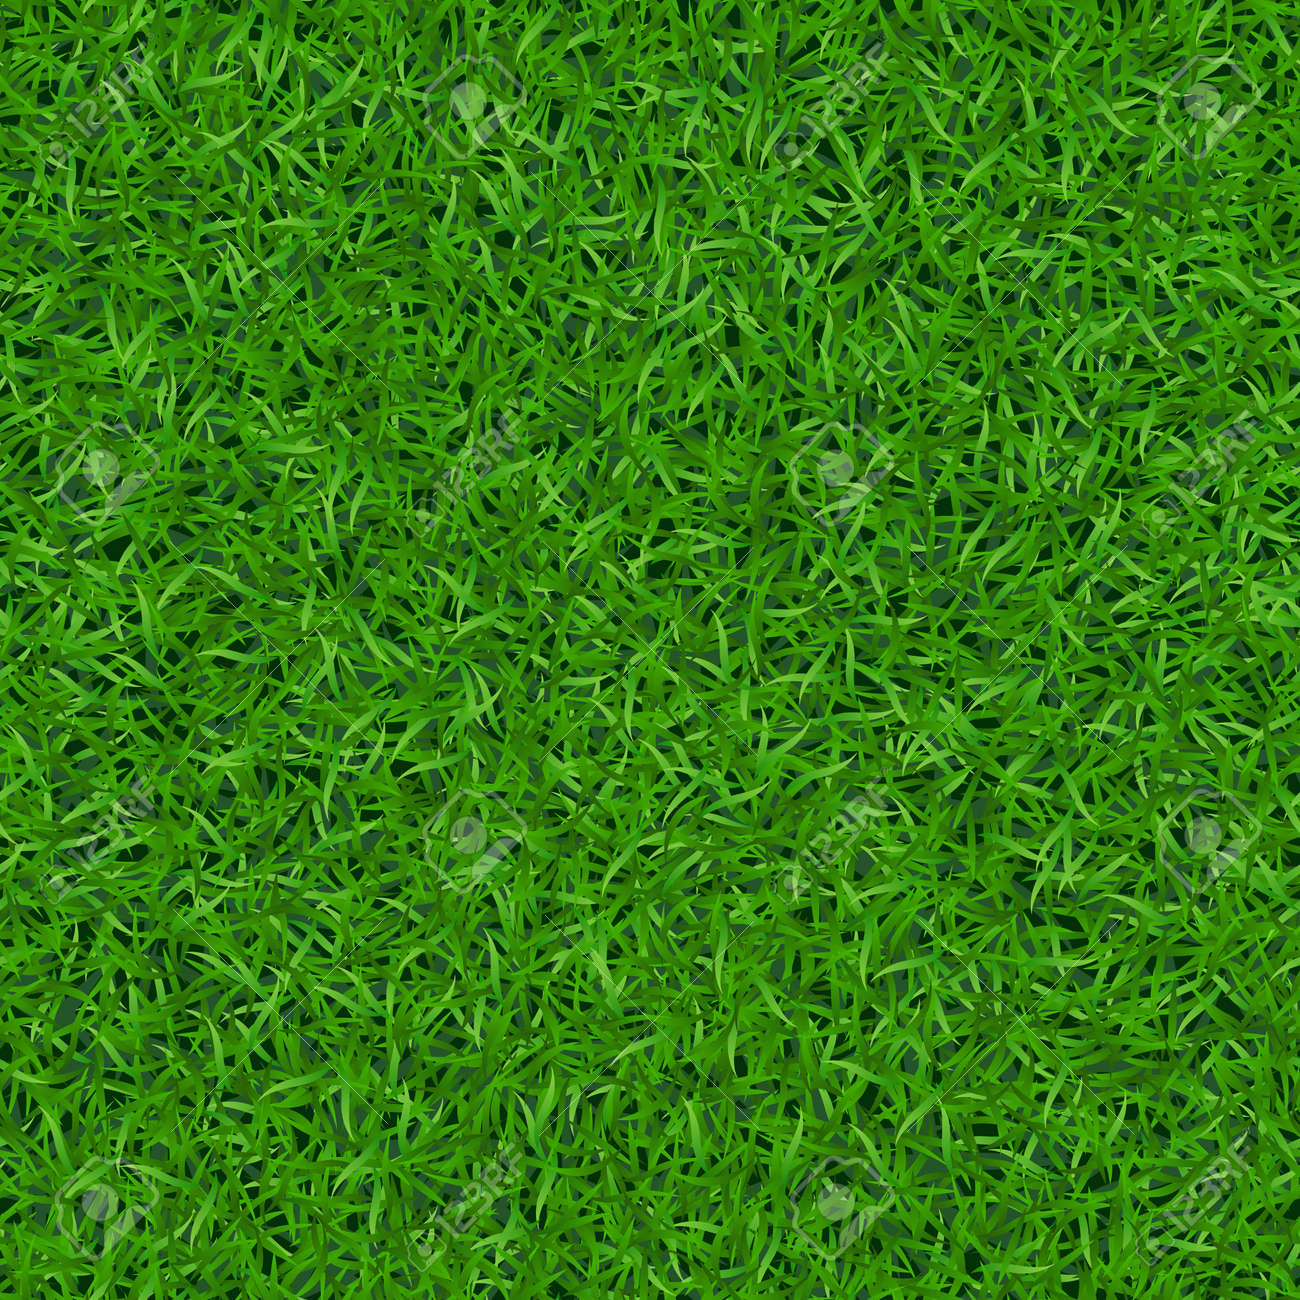 Green grass seamless pattern. Background lawn nature. Abstract field texture. Symbol of summer, plant, eco and natural, growth. Meadow design for card, wallpaper, wrapping, textile Vector Illustration - 54127107